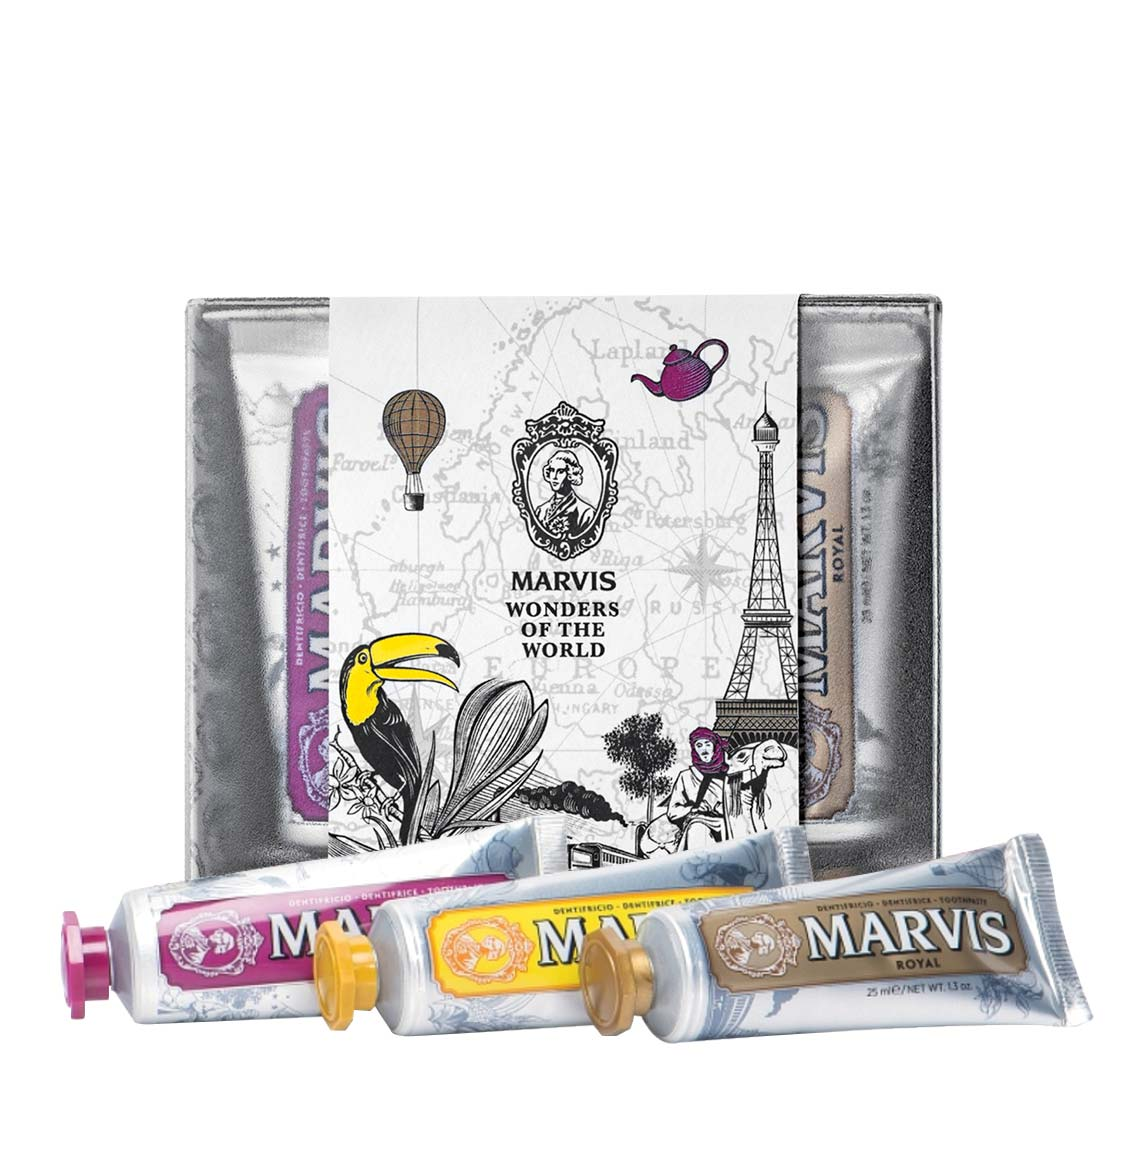 Marvis Wonders of the World Limited Edition Collection Toothpaste